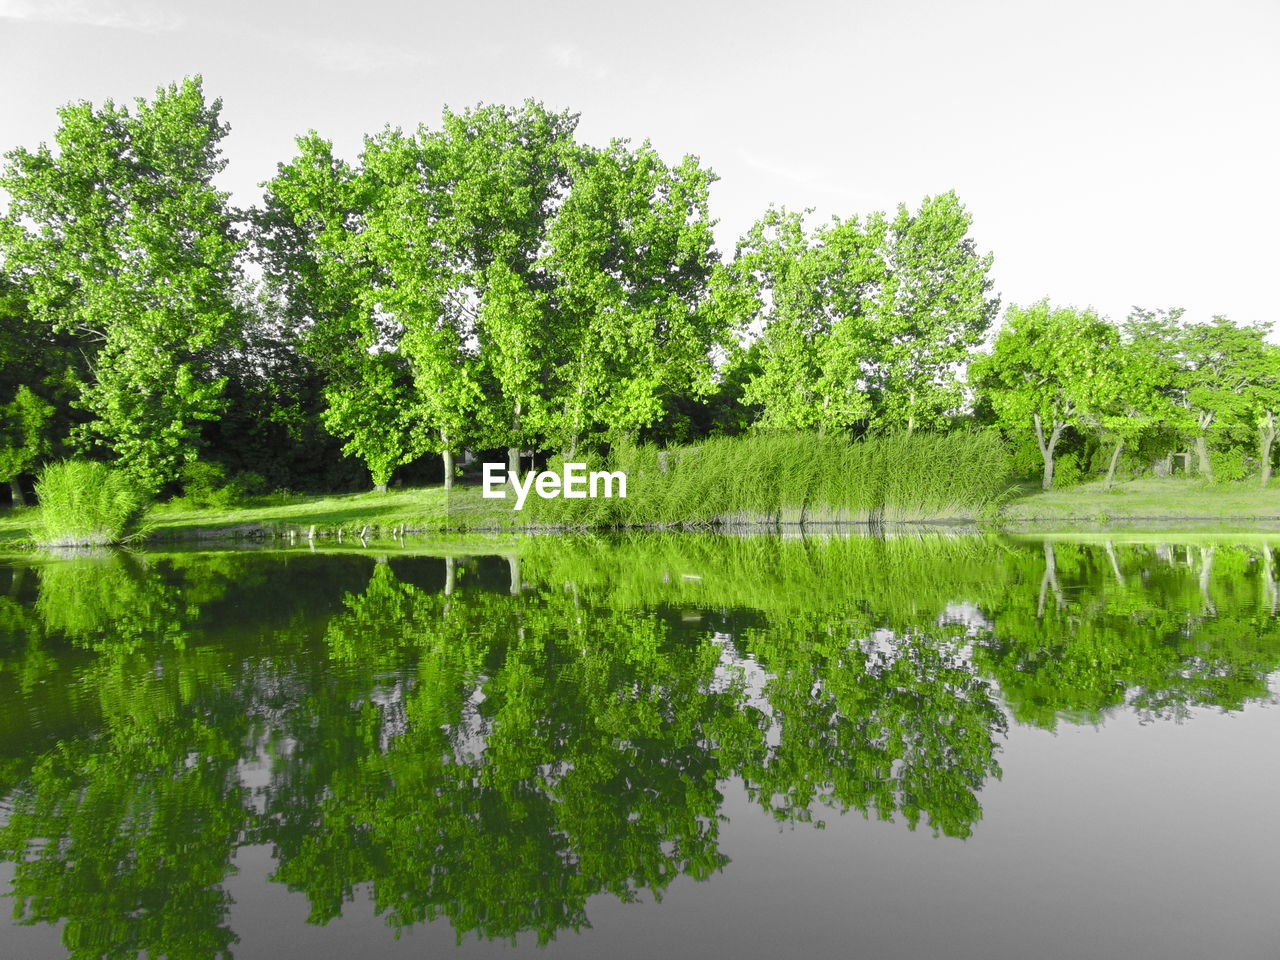 plant, reflection, lake, water, tree, green color, tranquility, beauty in nature, nature, waterfront, growth, tranquil scene, sky, no people, scenics - nature, symmetry, day, outdoors, standing water, floating on water, reflection lake